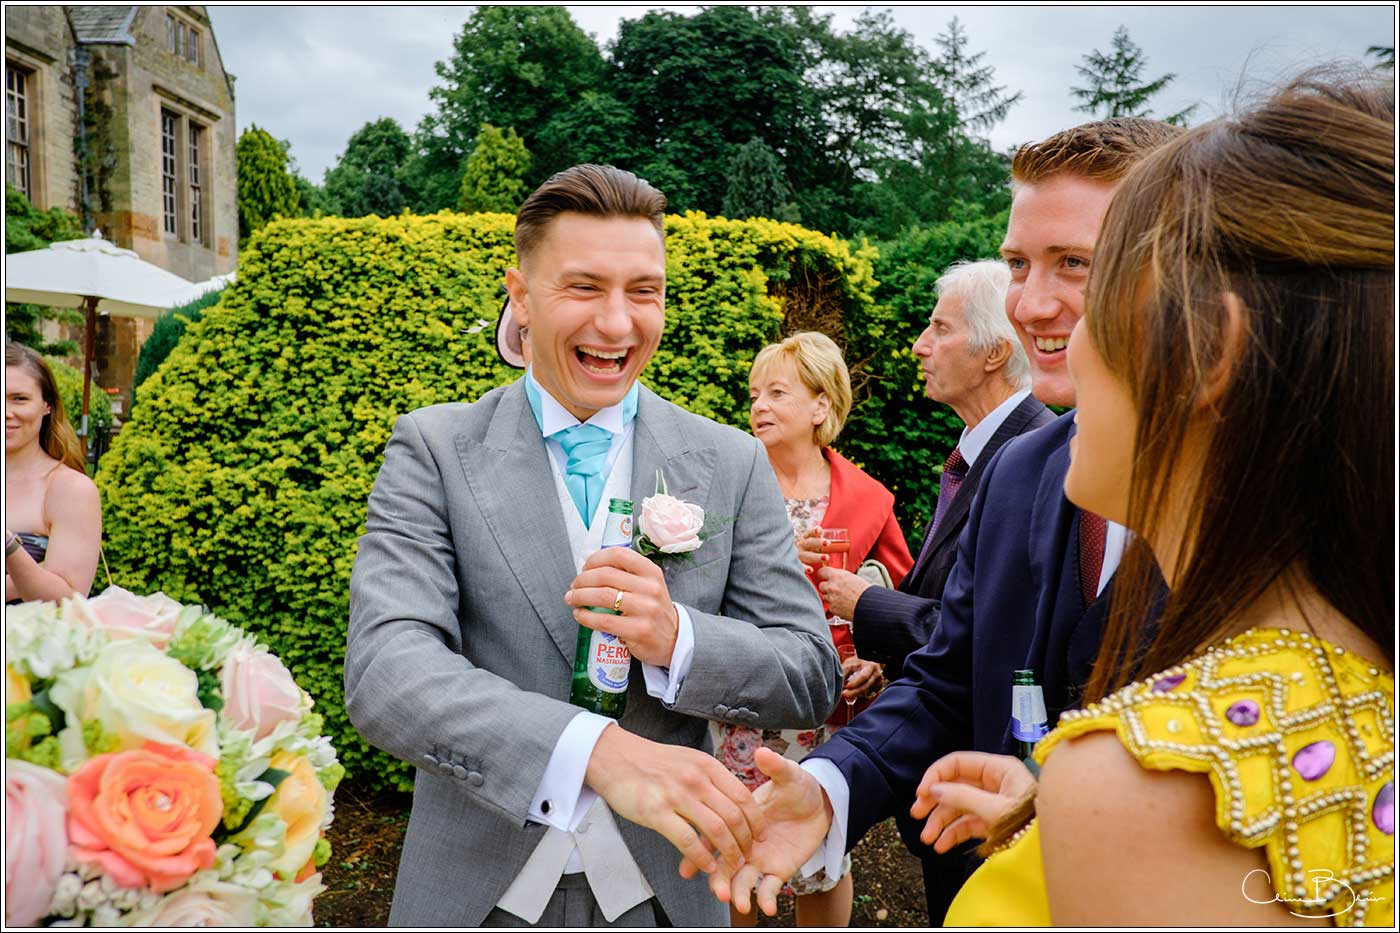 Coombe Abbey wedding photography showing groom happily greeting guests